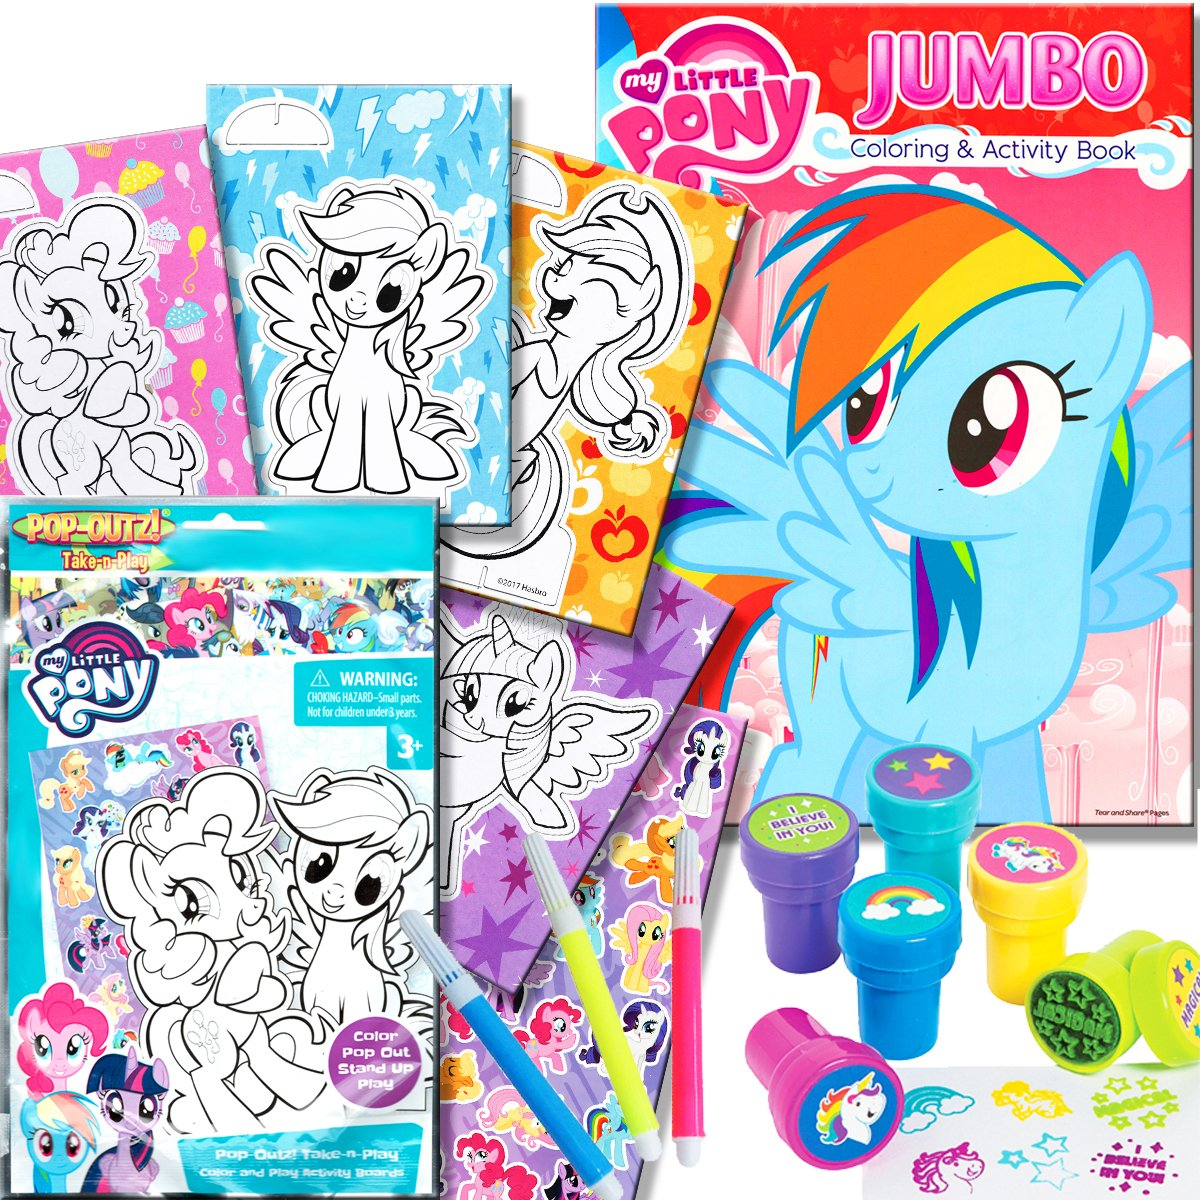 My little pony coloring book with take n play set 96 page coloring book my little pony stickers